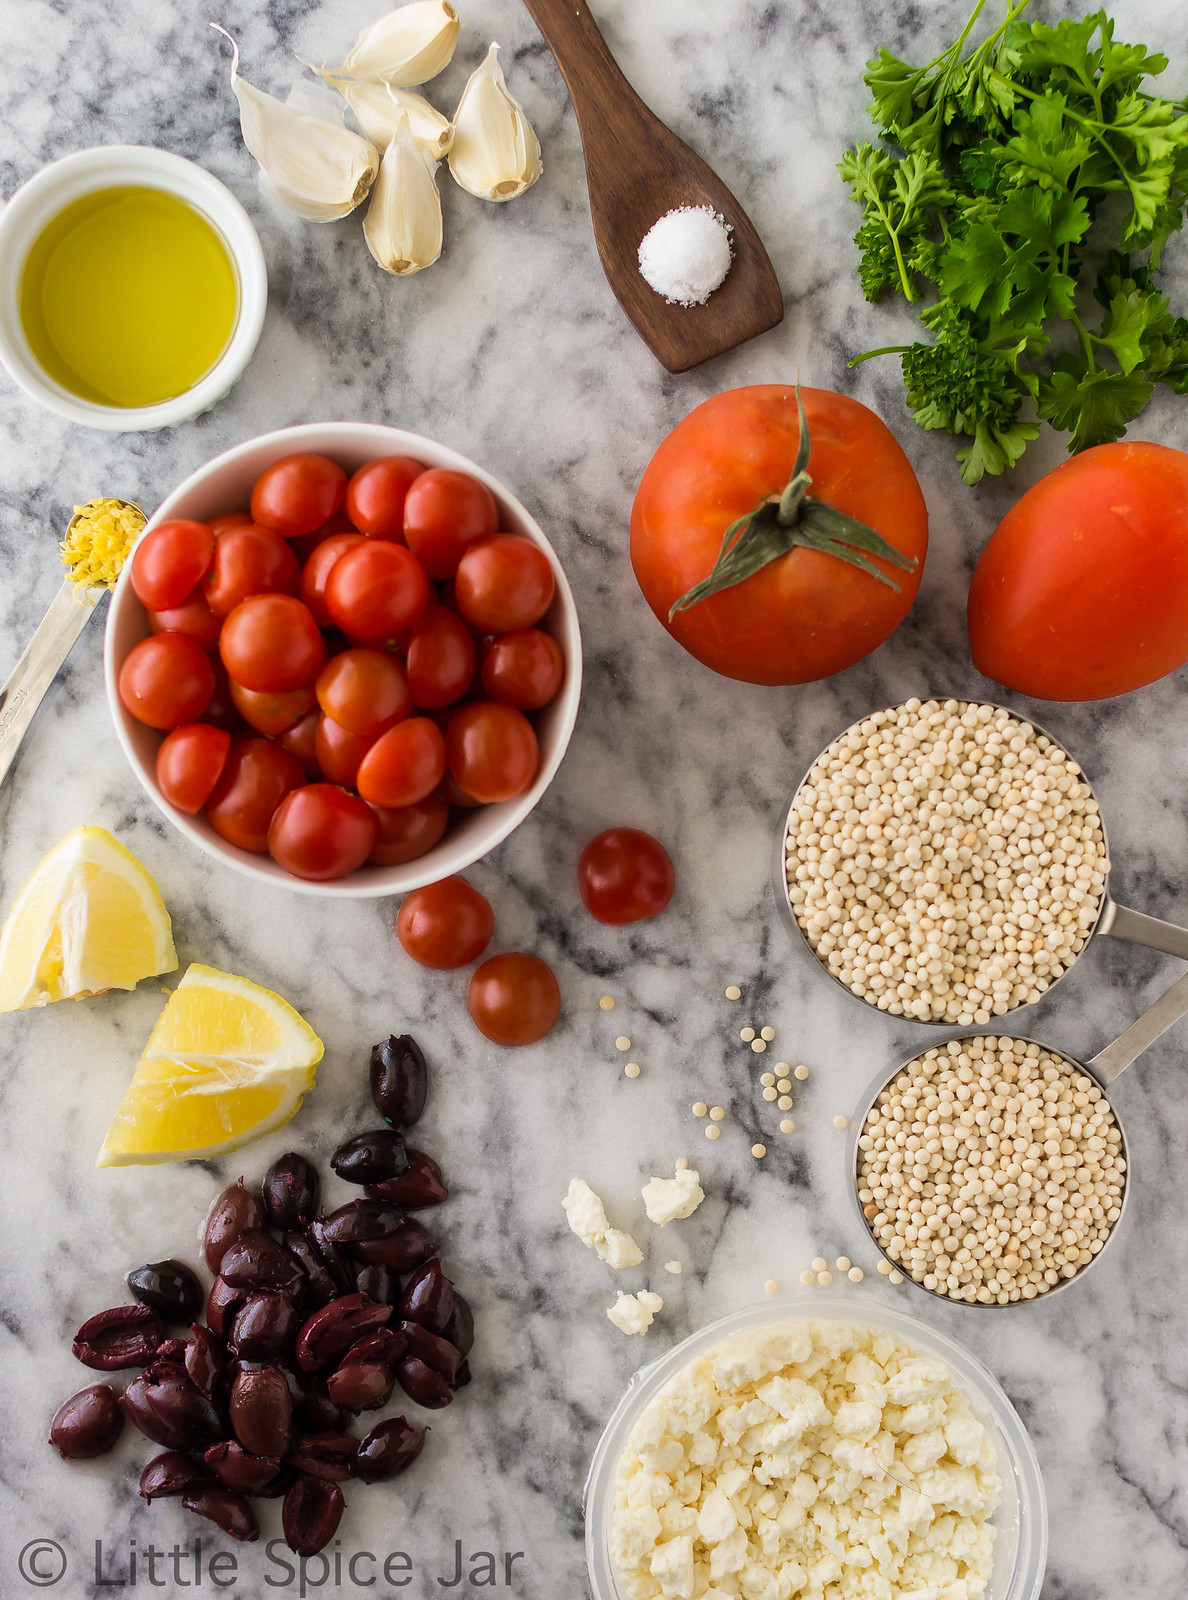 ingredients for mediterranean pearl couscous salad in bowls and scattered on marble